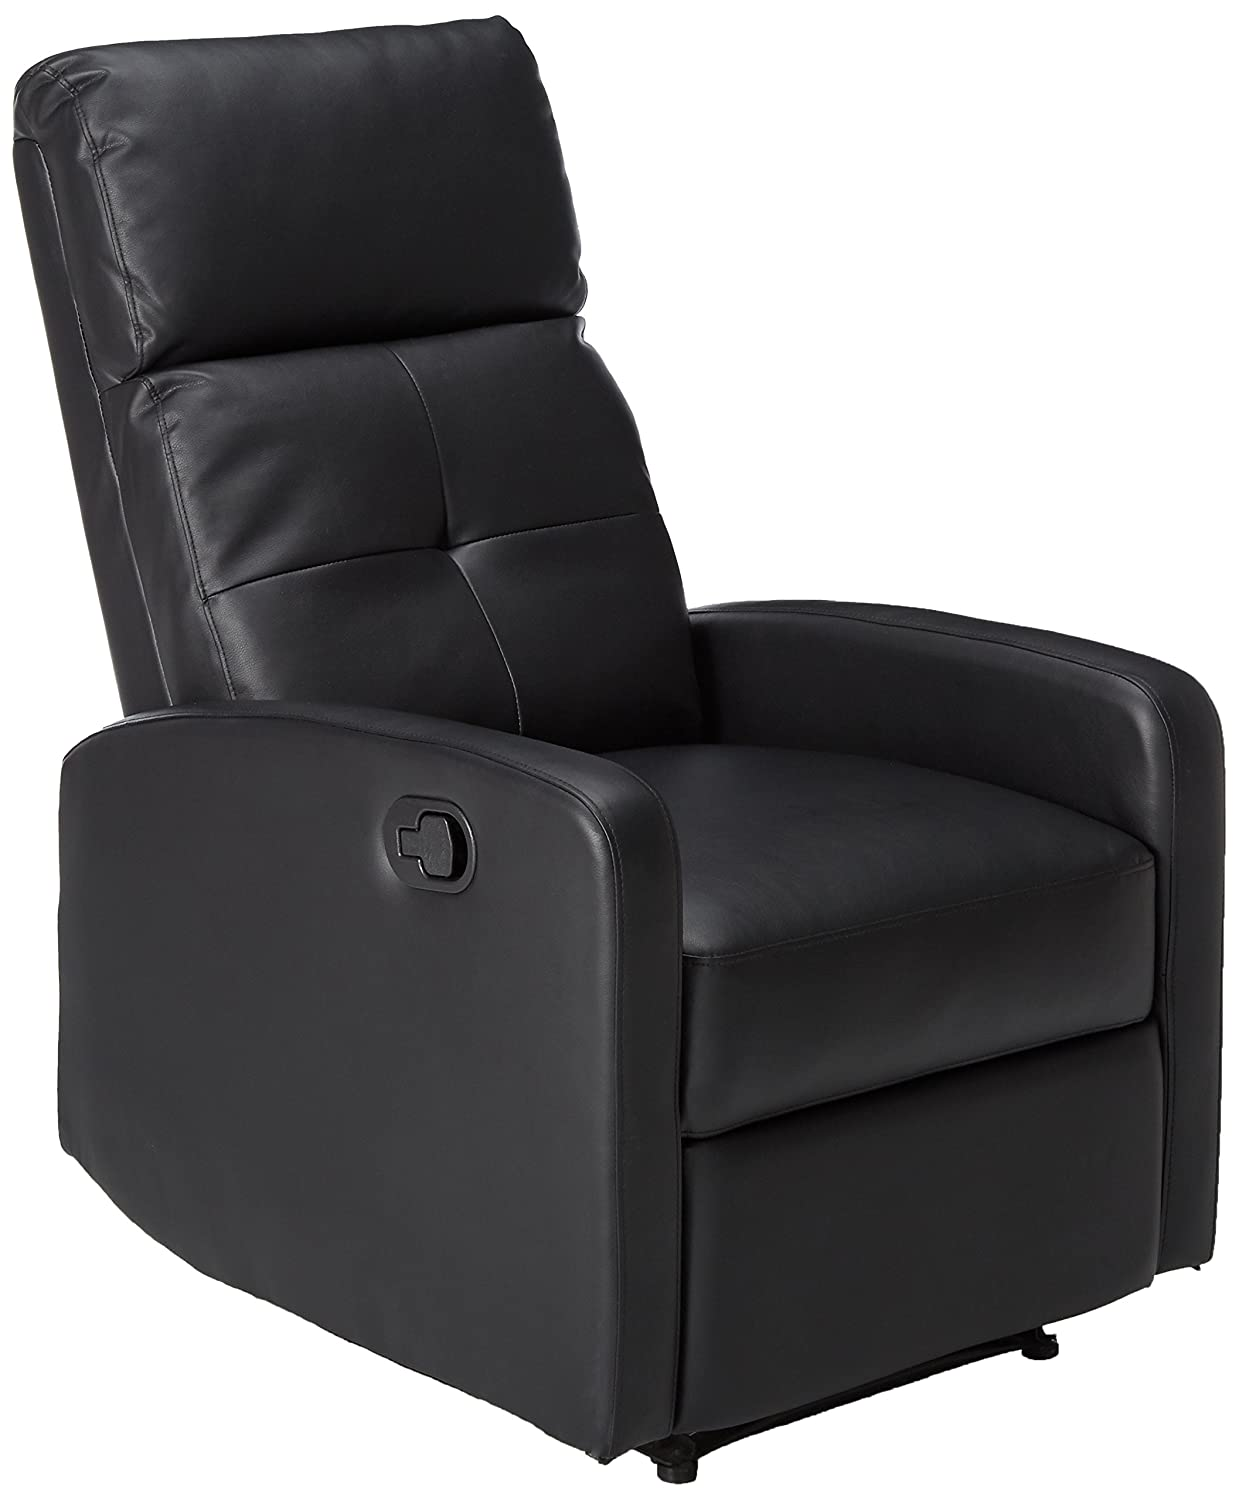 Great Deal Furniture Leather Recliner Club Chair